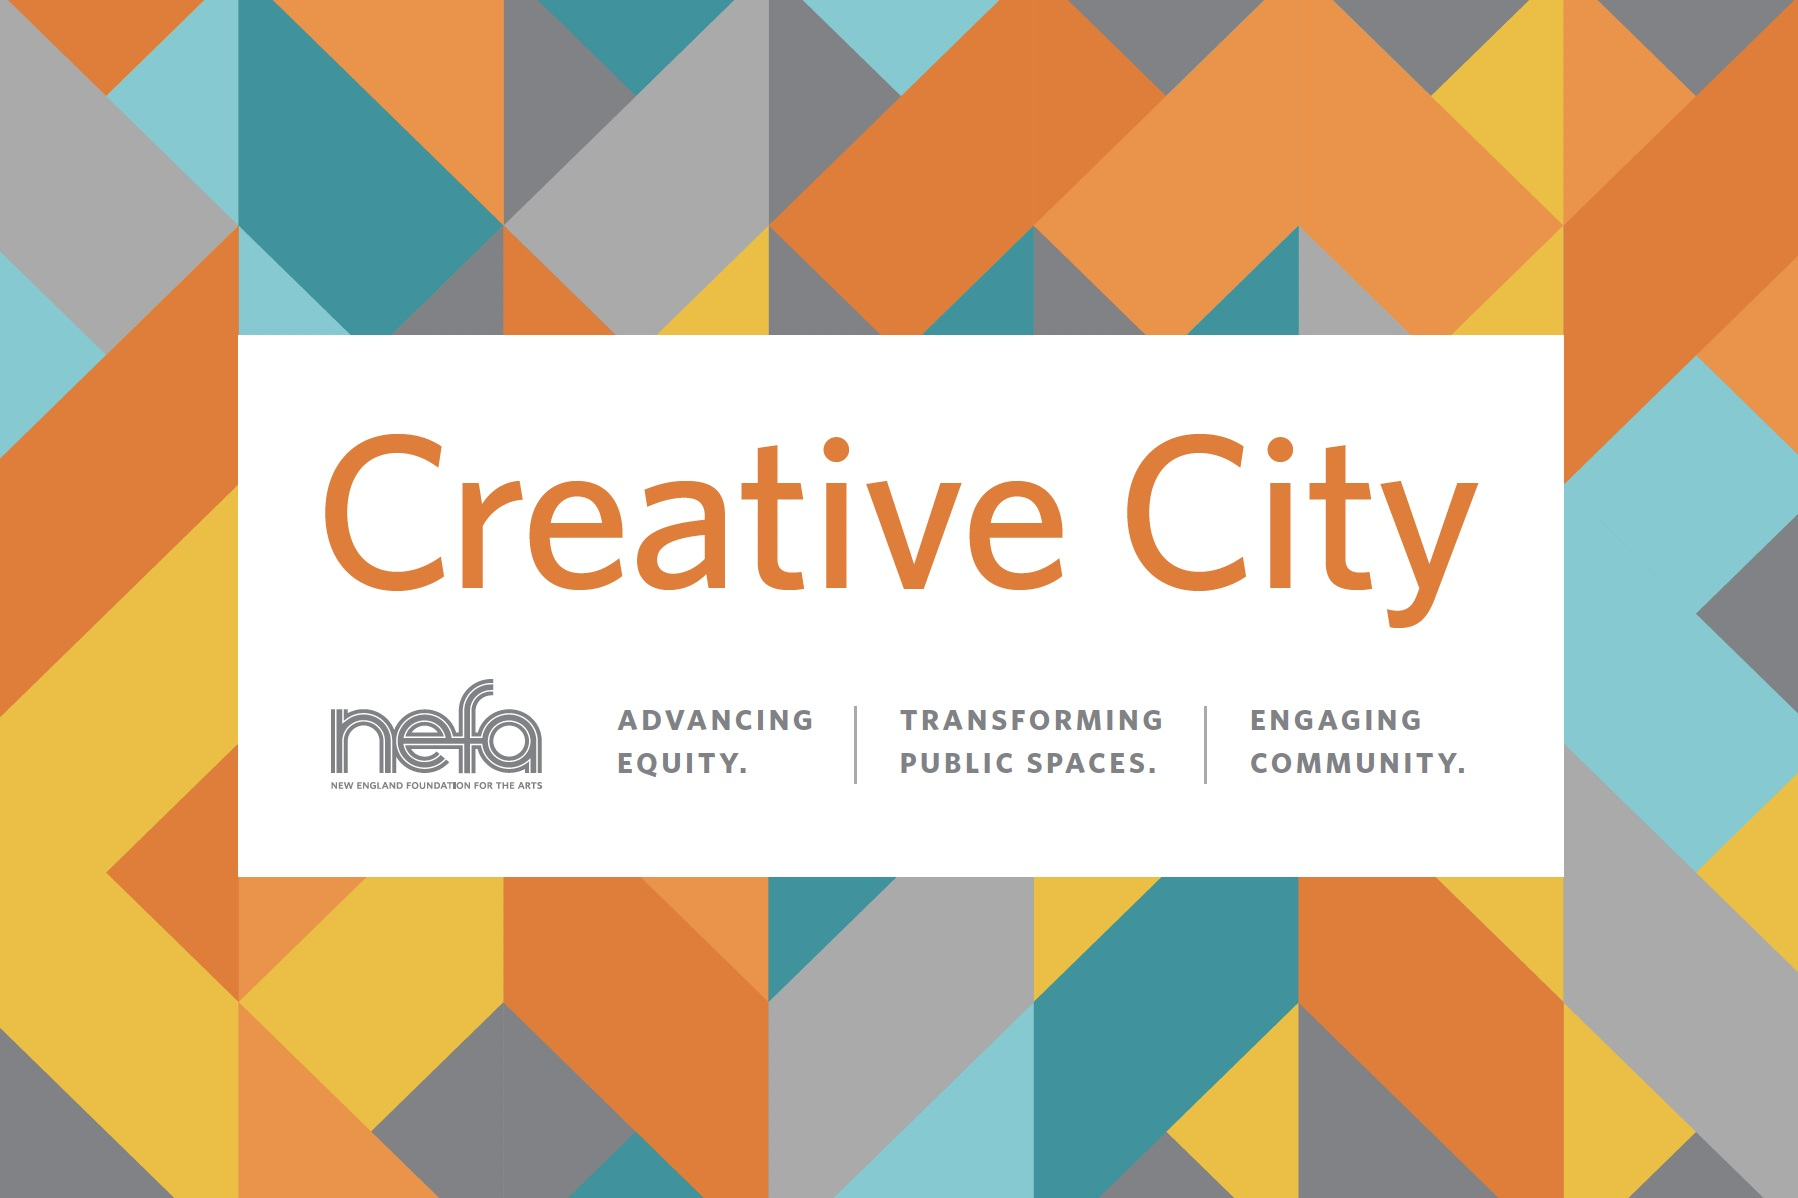 WBUR The Artery Article: NEFA And Barr Foundation Reveal Results Of Creative City Grant Program, Increase Award Amount. Read the whole article  here  and see the  report here